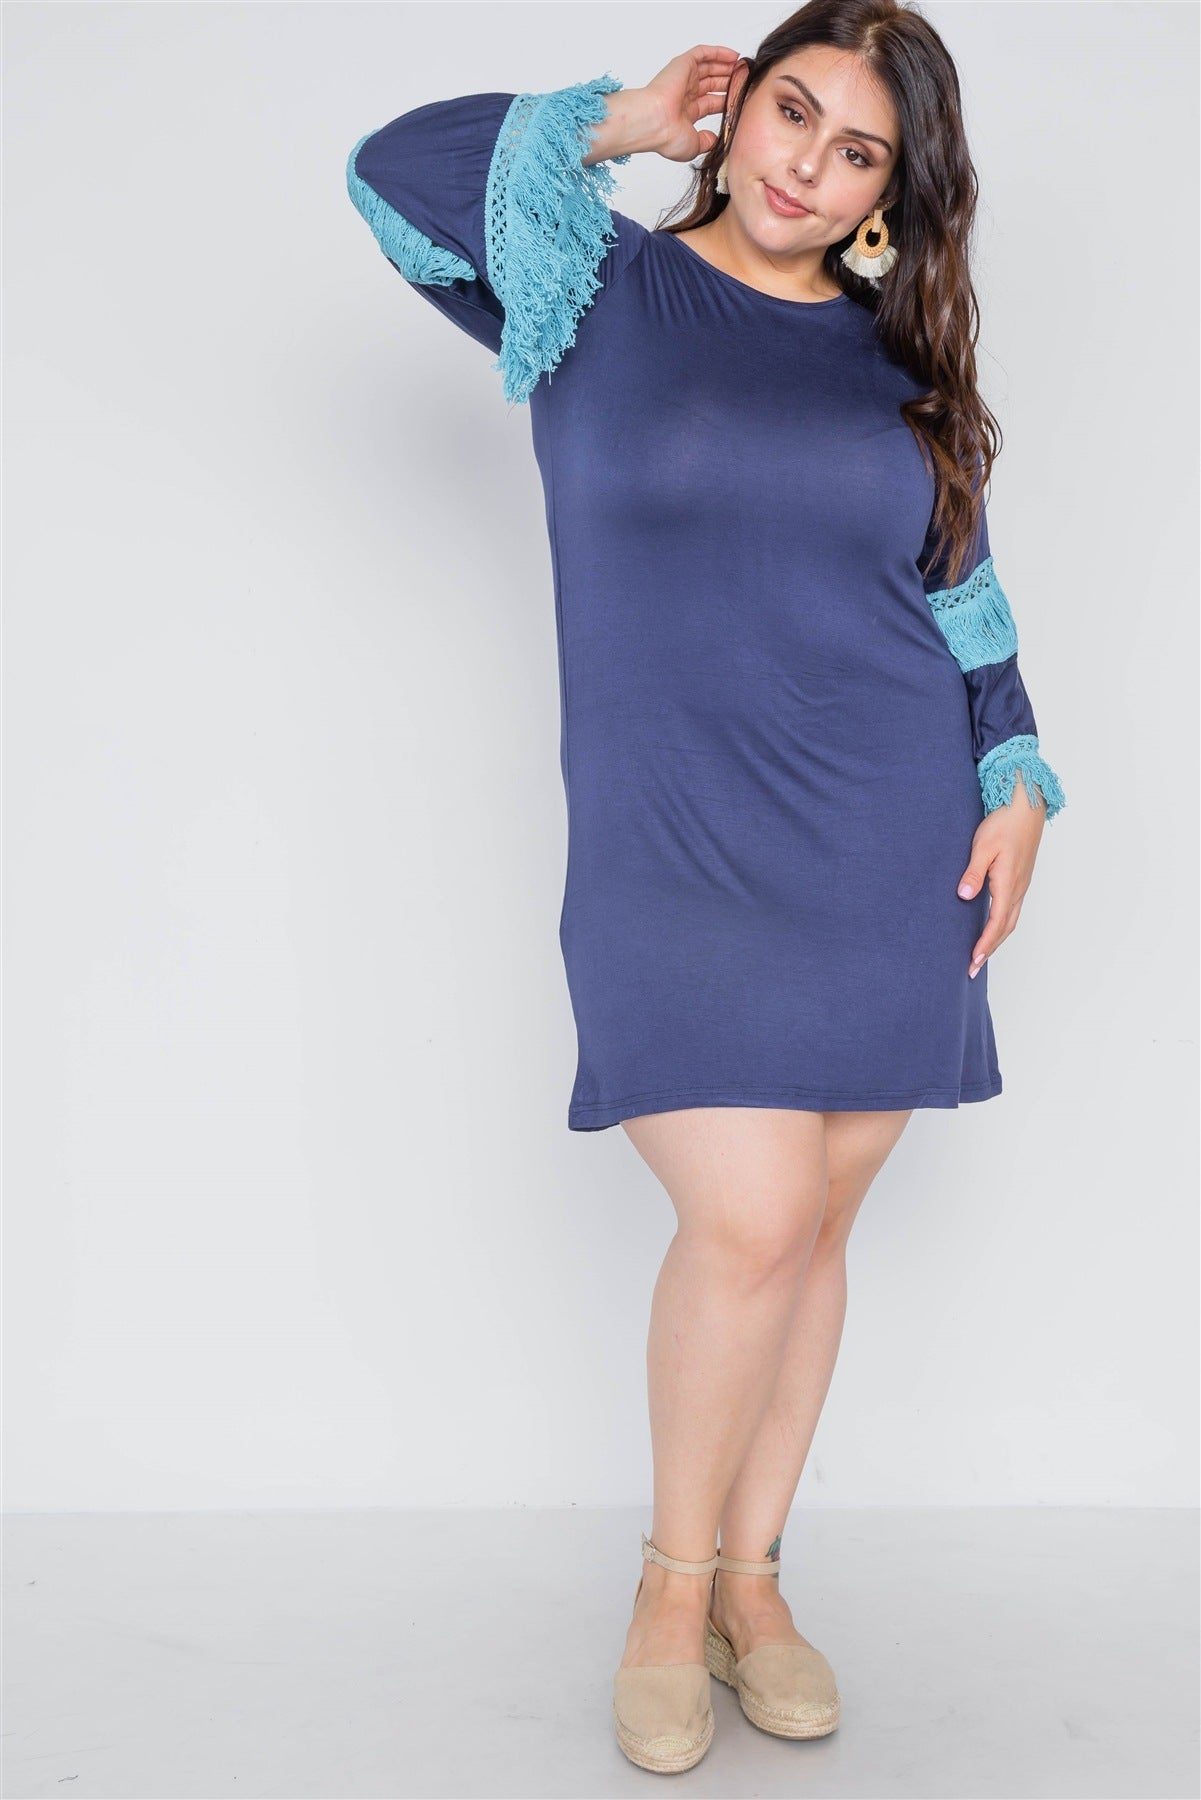 Plus Size Crochet Mini Dress - Navy